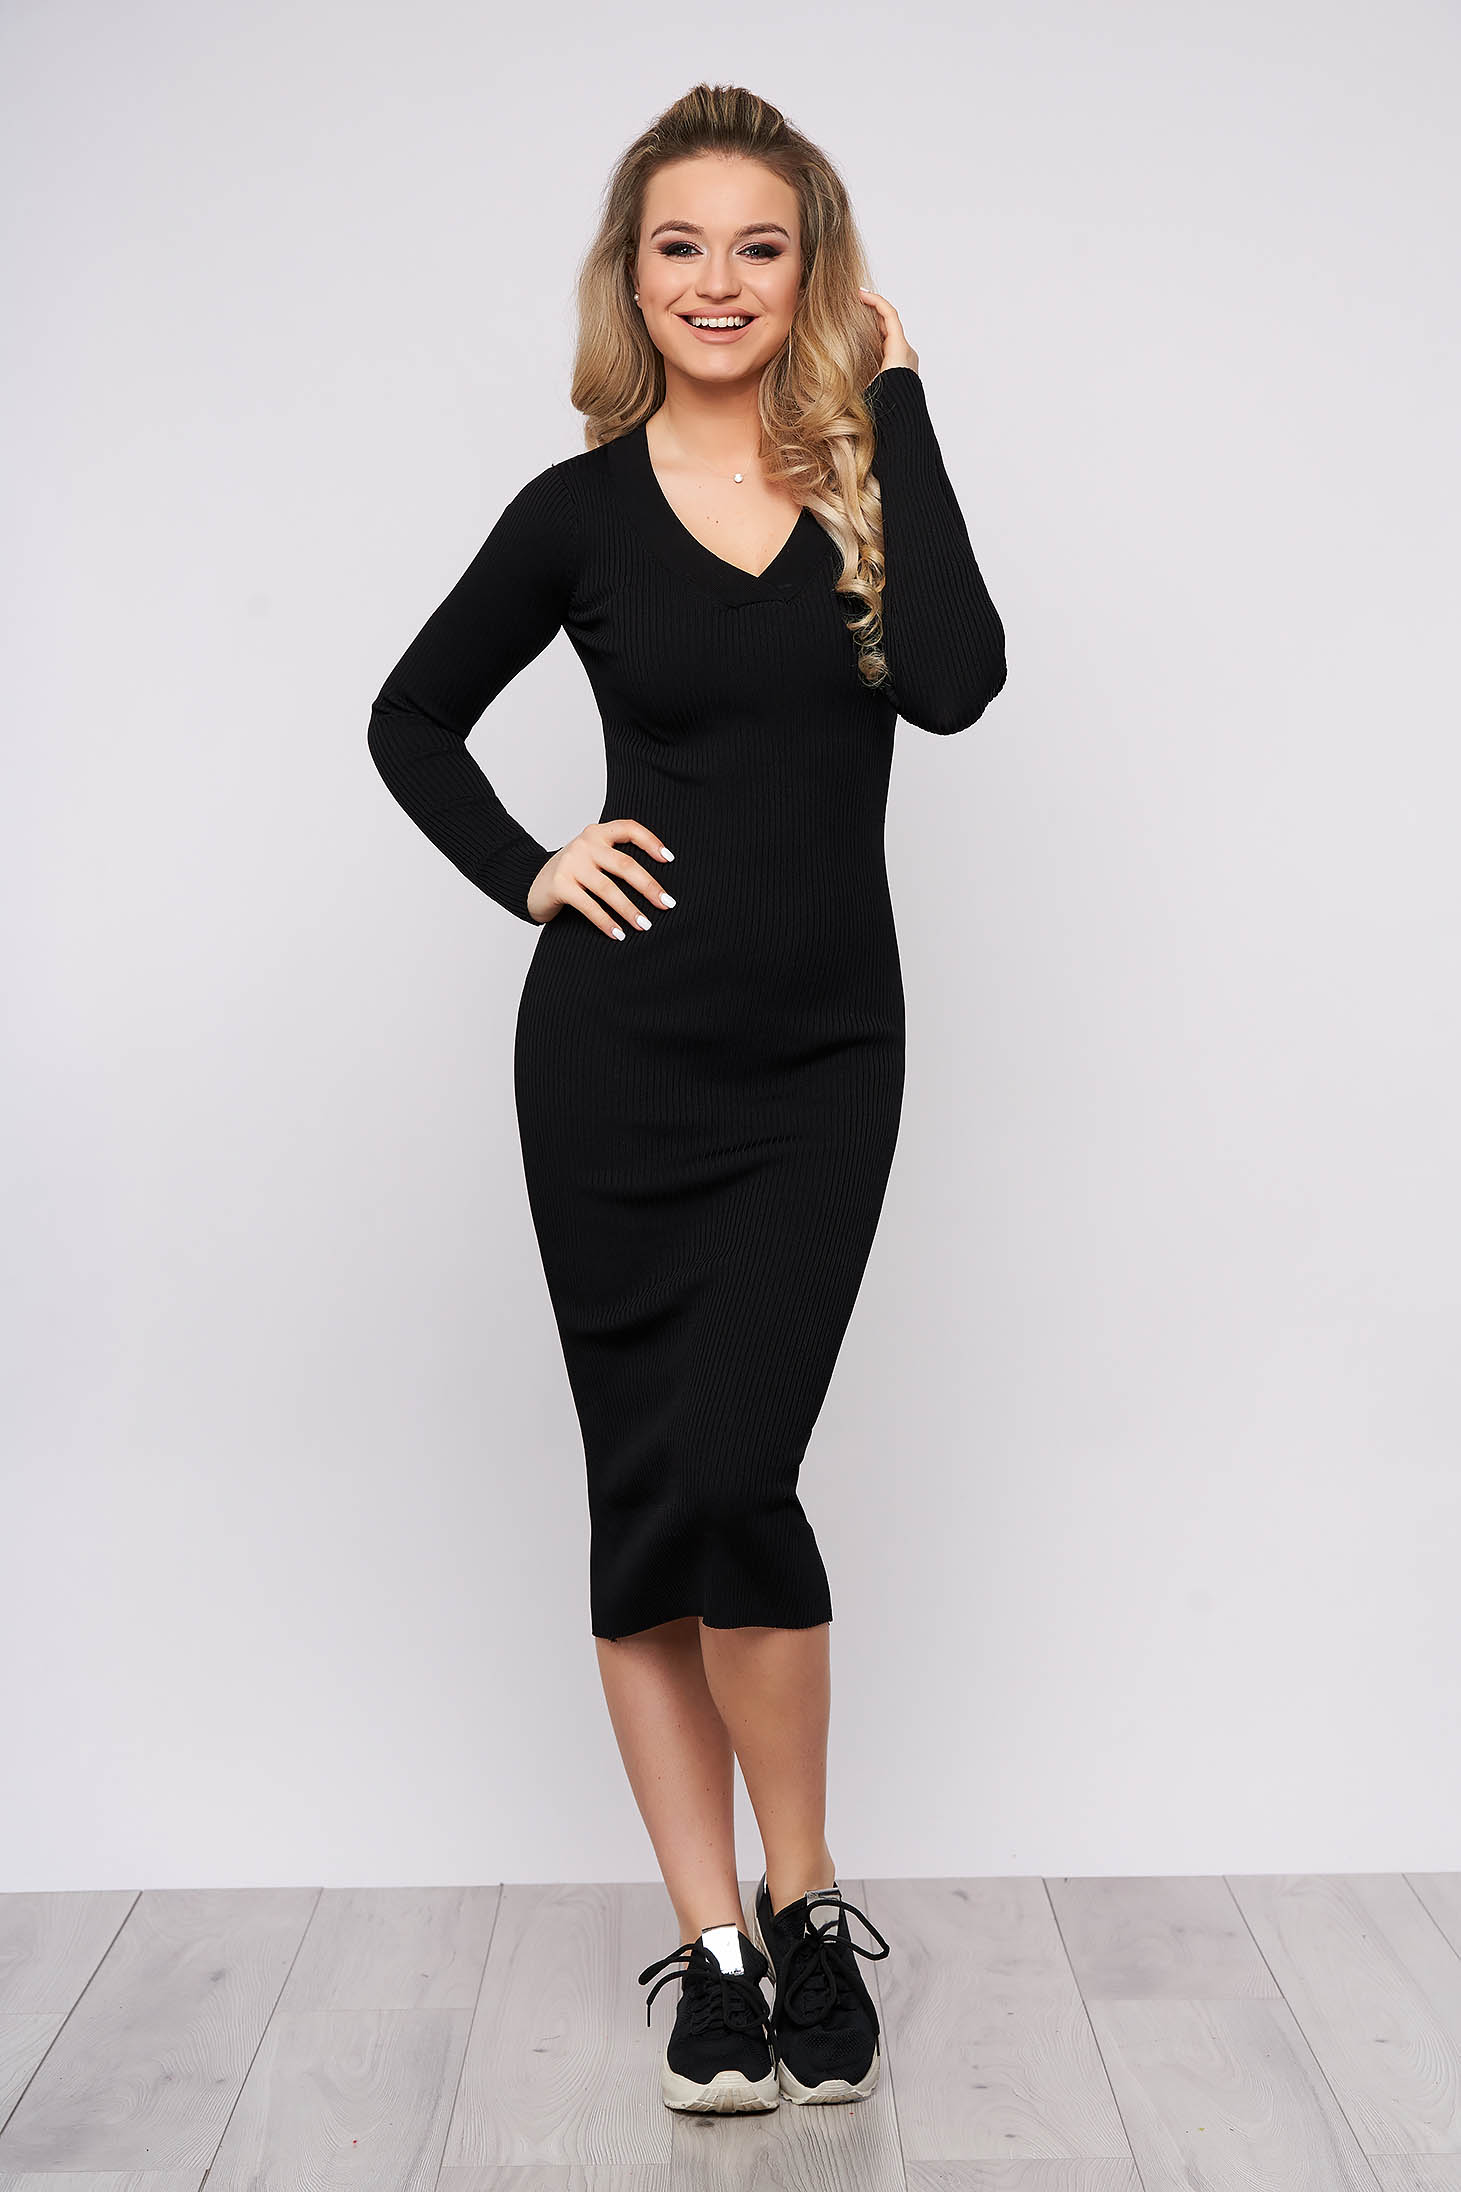 Black dress casual daily knitted fabric long sleeved arched cut with v-neckline